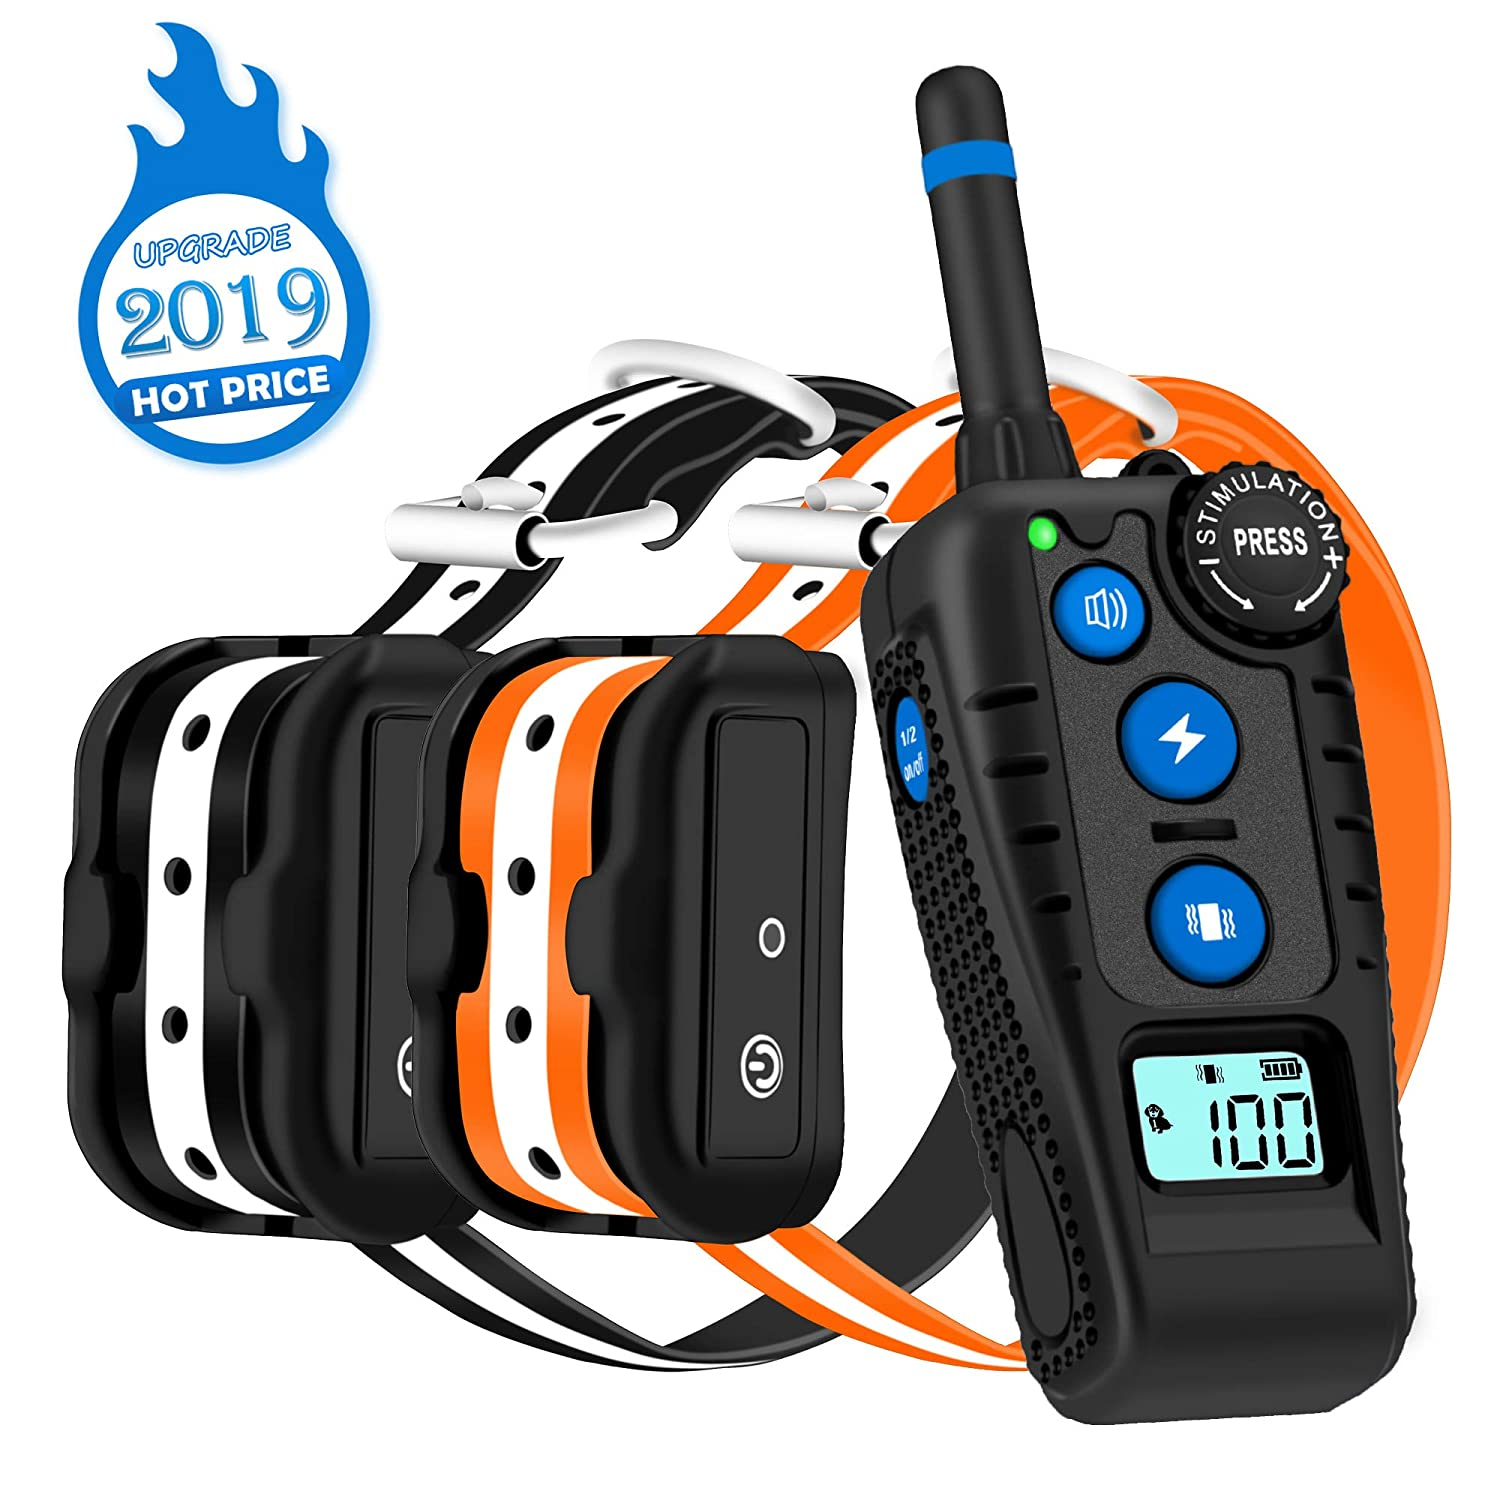 WILLBEST Dog Training Collars with Rotary Dial Remote, Waterproof and Rechargeable Shock Reflective Collars with Beep, Vibration and Shock Modes for 2 Dogs